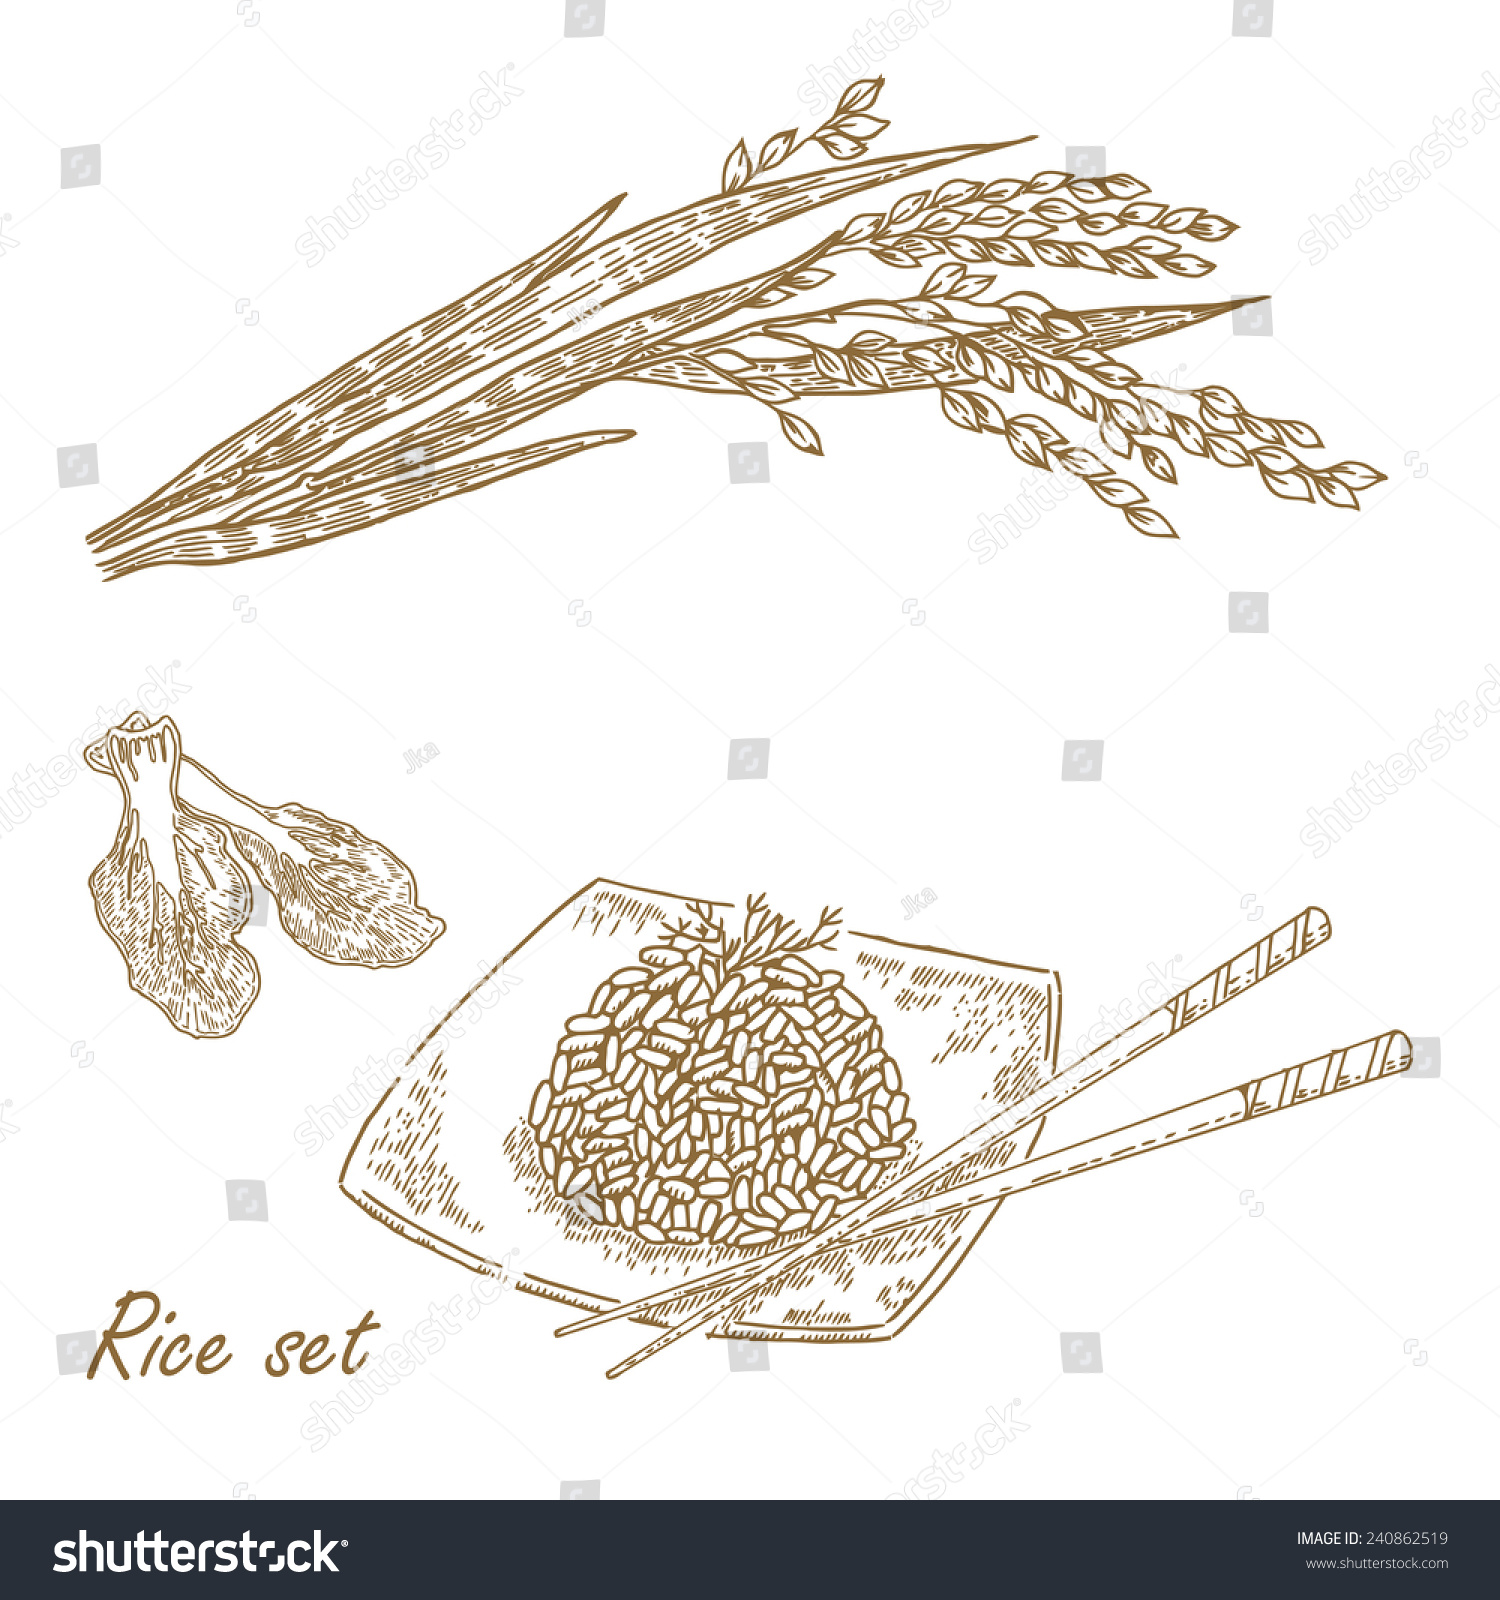 hight resolution of hand drawn vector illustration rice plant rice porridge in sketch style